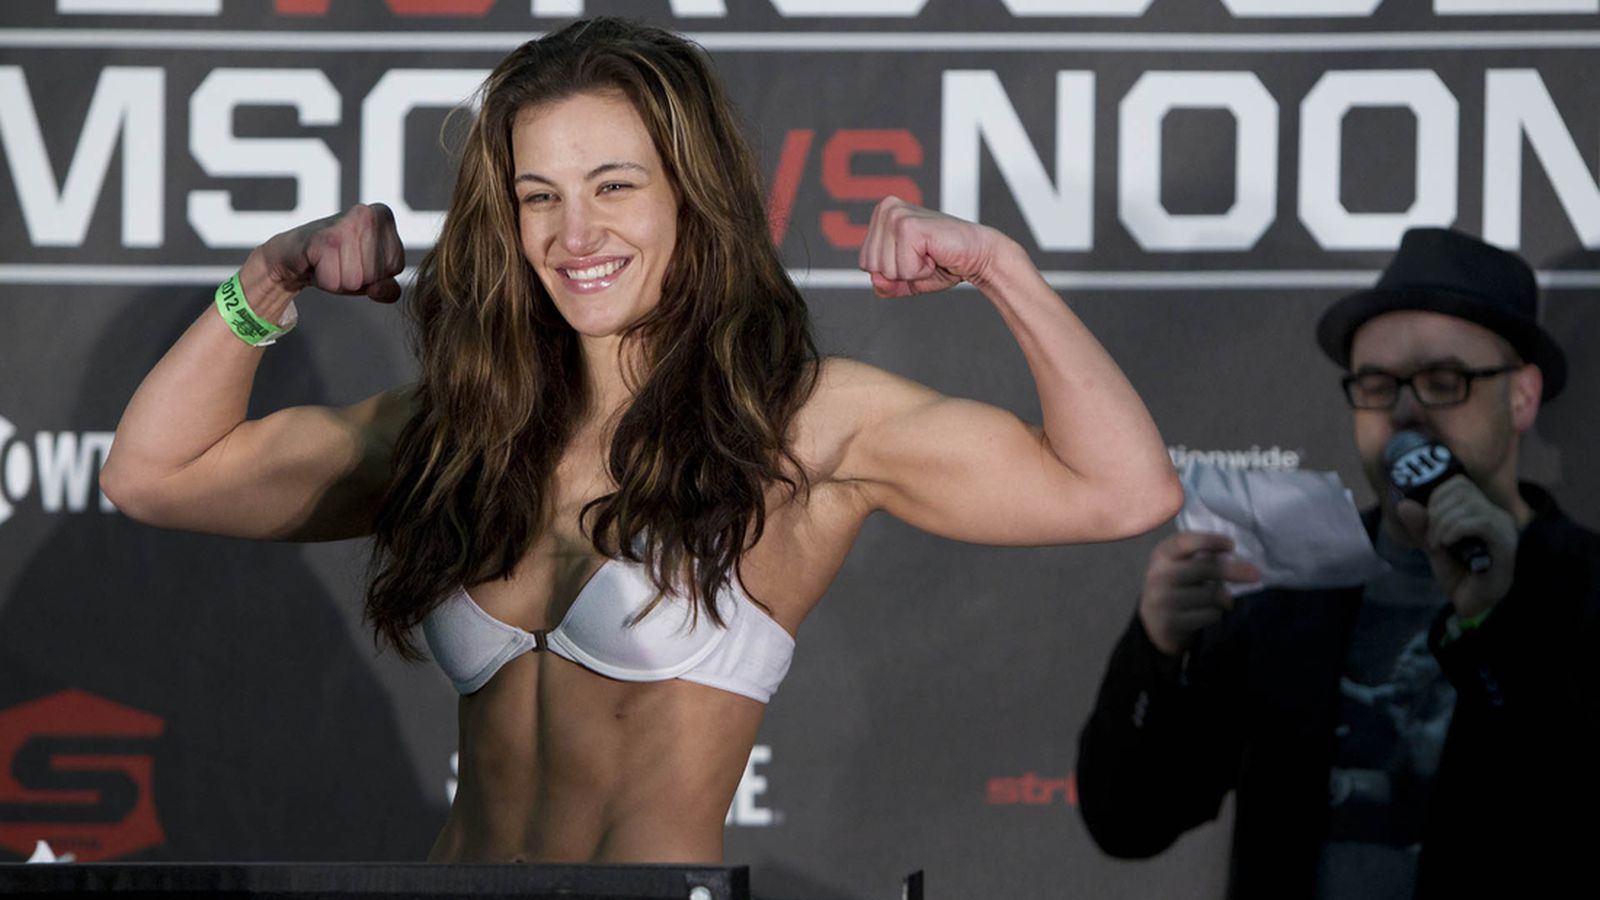 Miesha tate nude pics in espn magazine body issue coming july 12